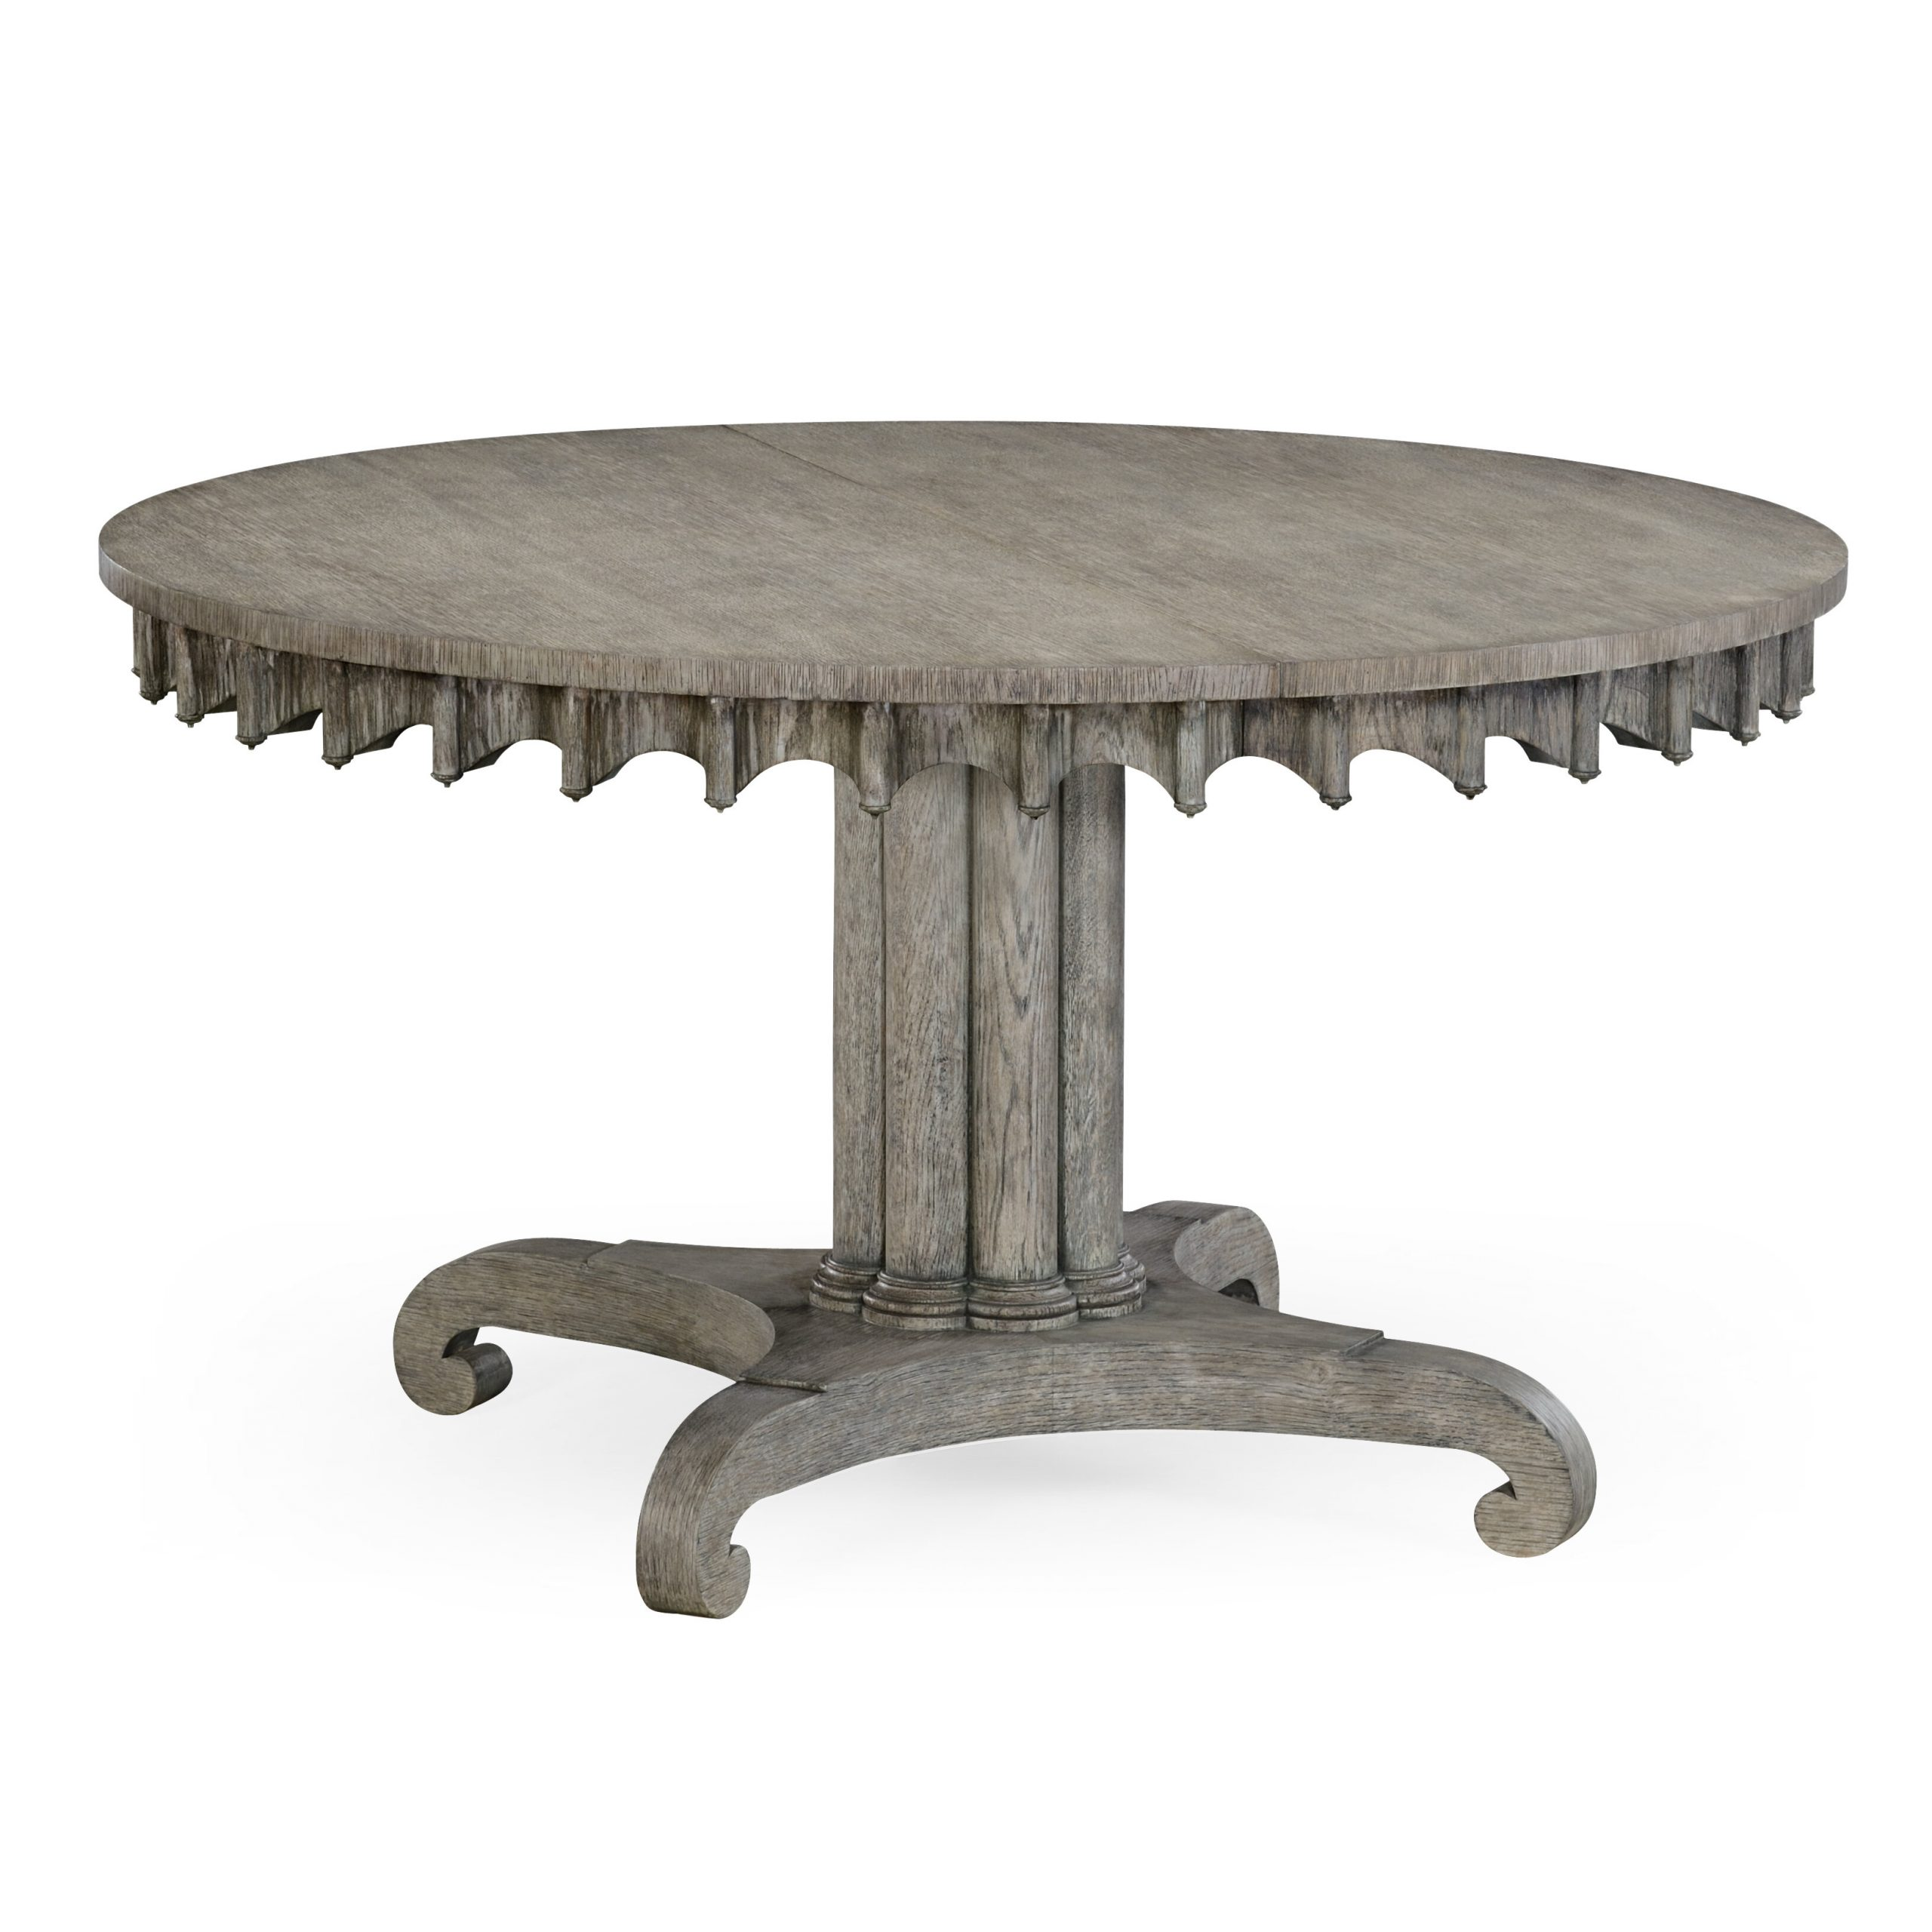 Solid Wood Dining Table Regarding Most Recently Released Cleary Oval Dining Pedestal Tables (View 4 of 25)